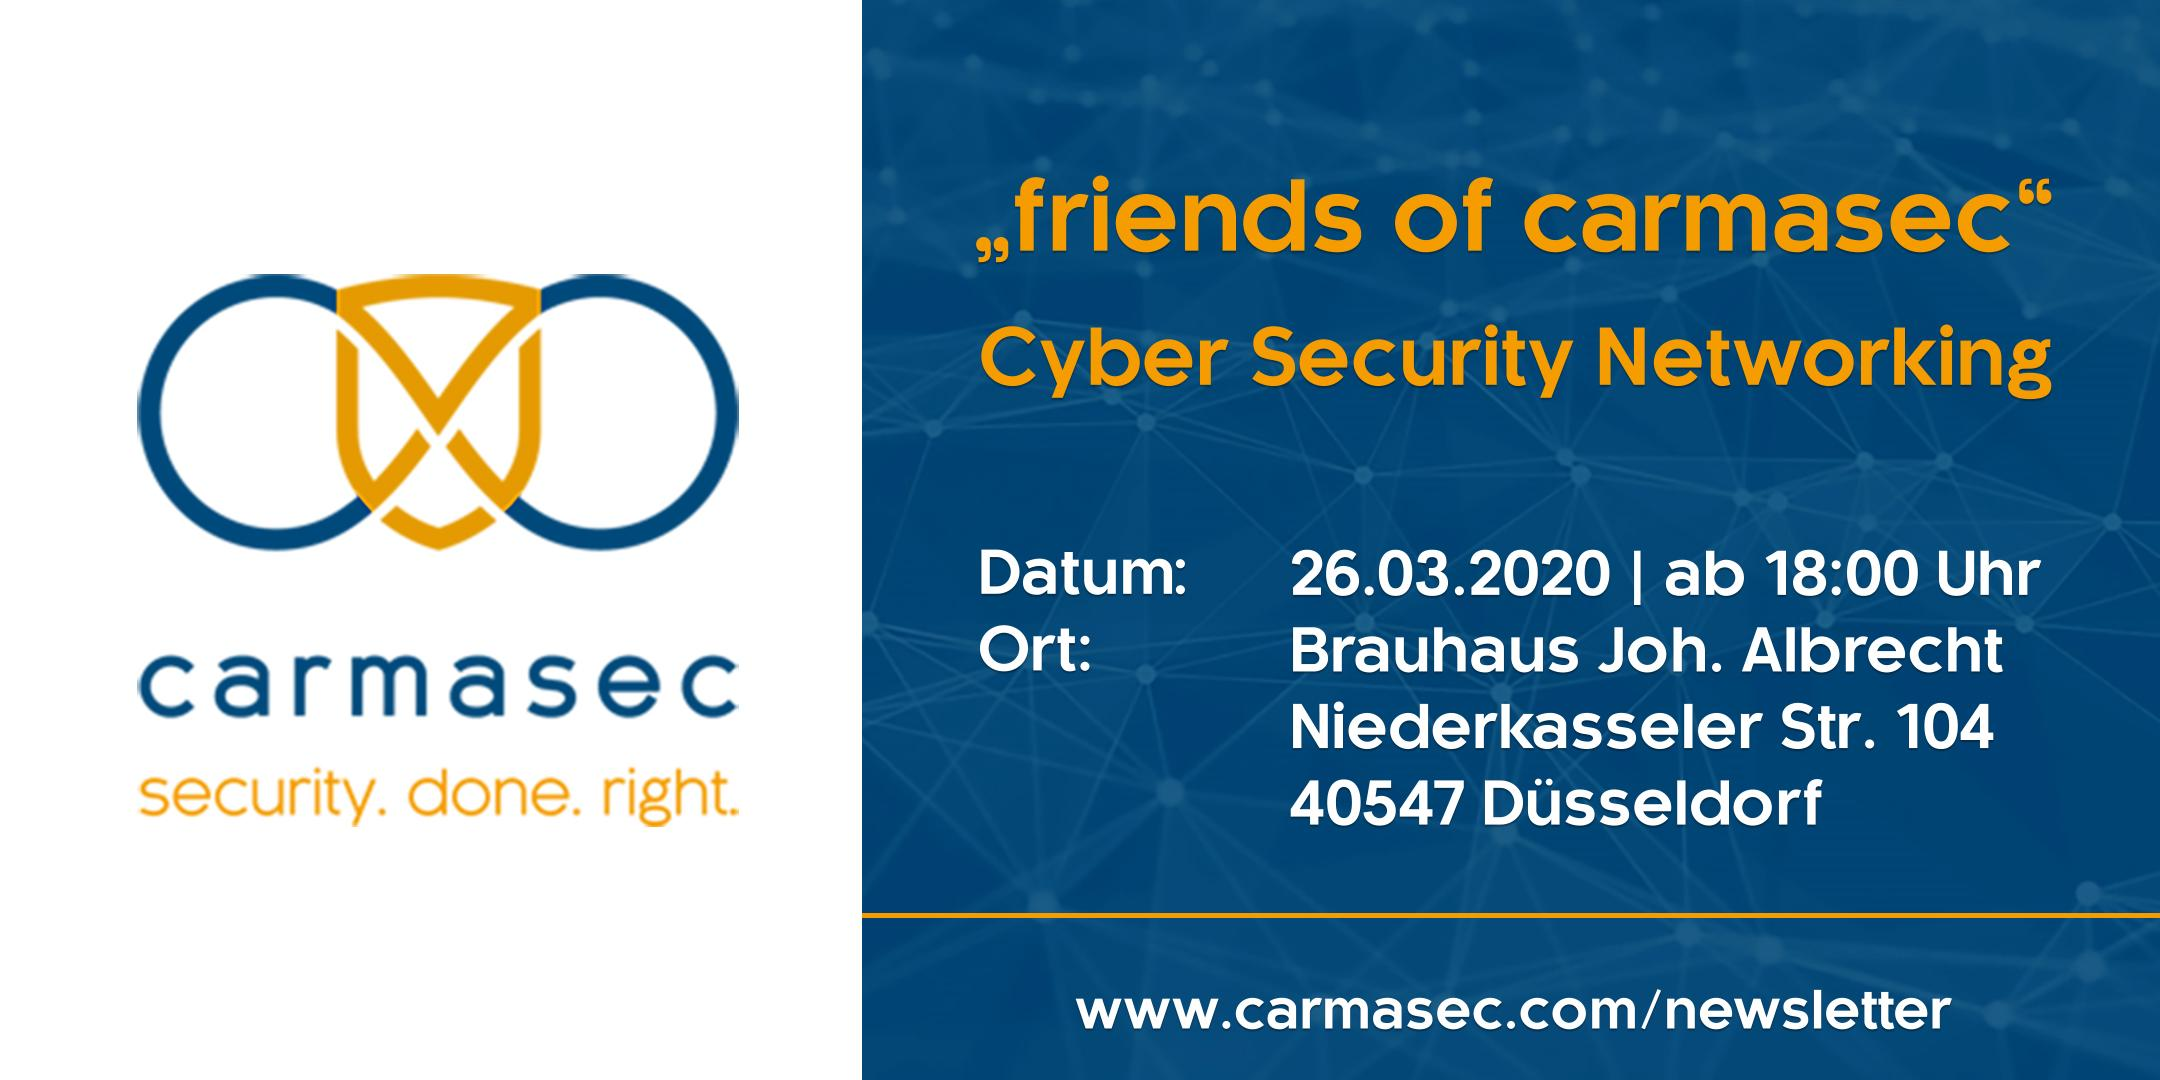 5. friends of carmasec Stammtisch - Cyber Security Networking